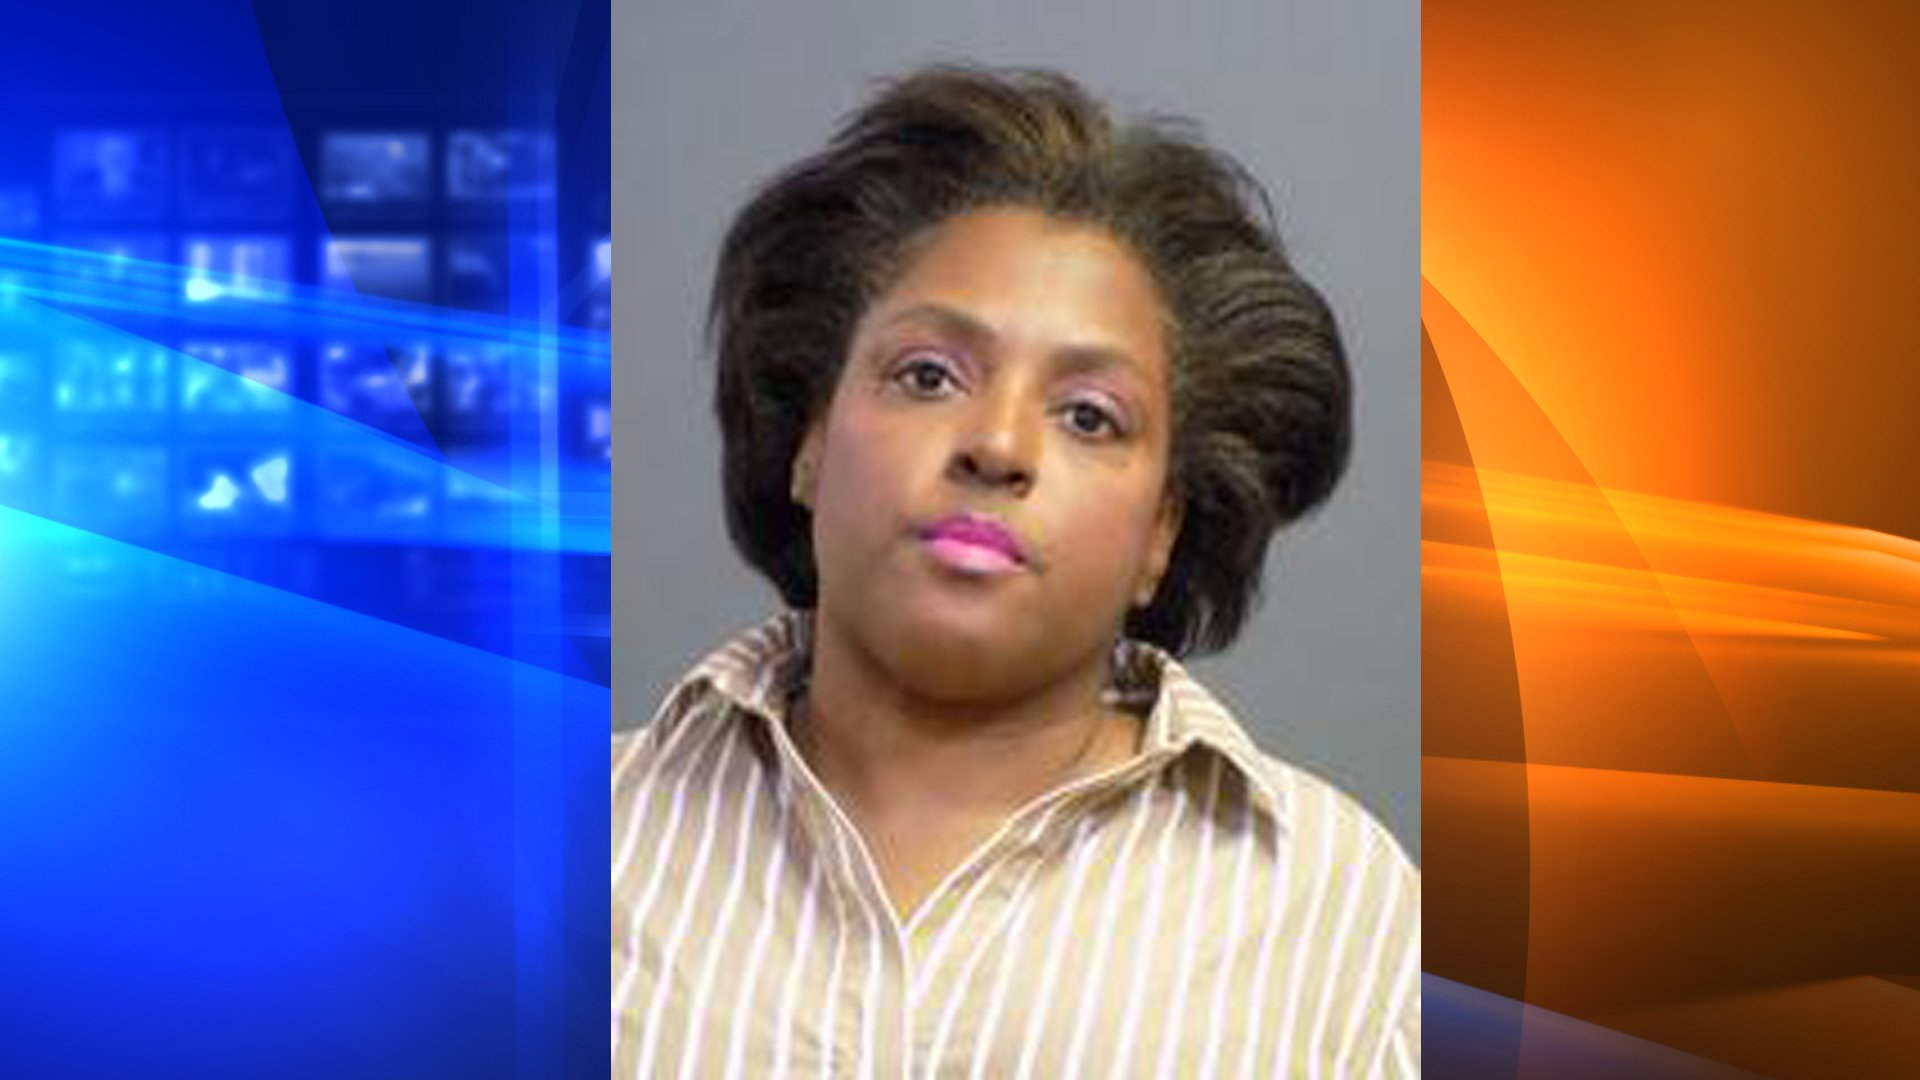 Karen Yvonne Floyd is seen in a booking photo released by the Costa Mesa Police Department on Jan. 14, 2020.